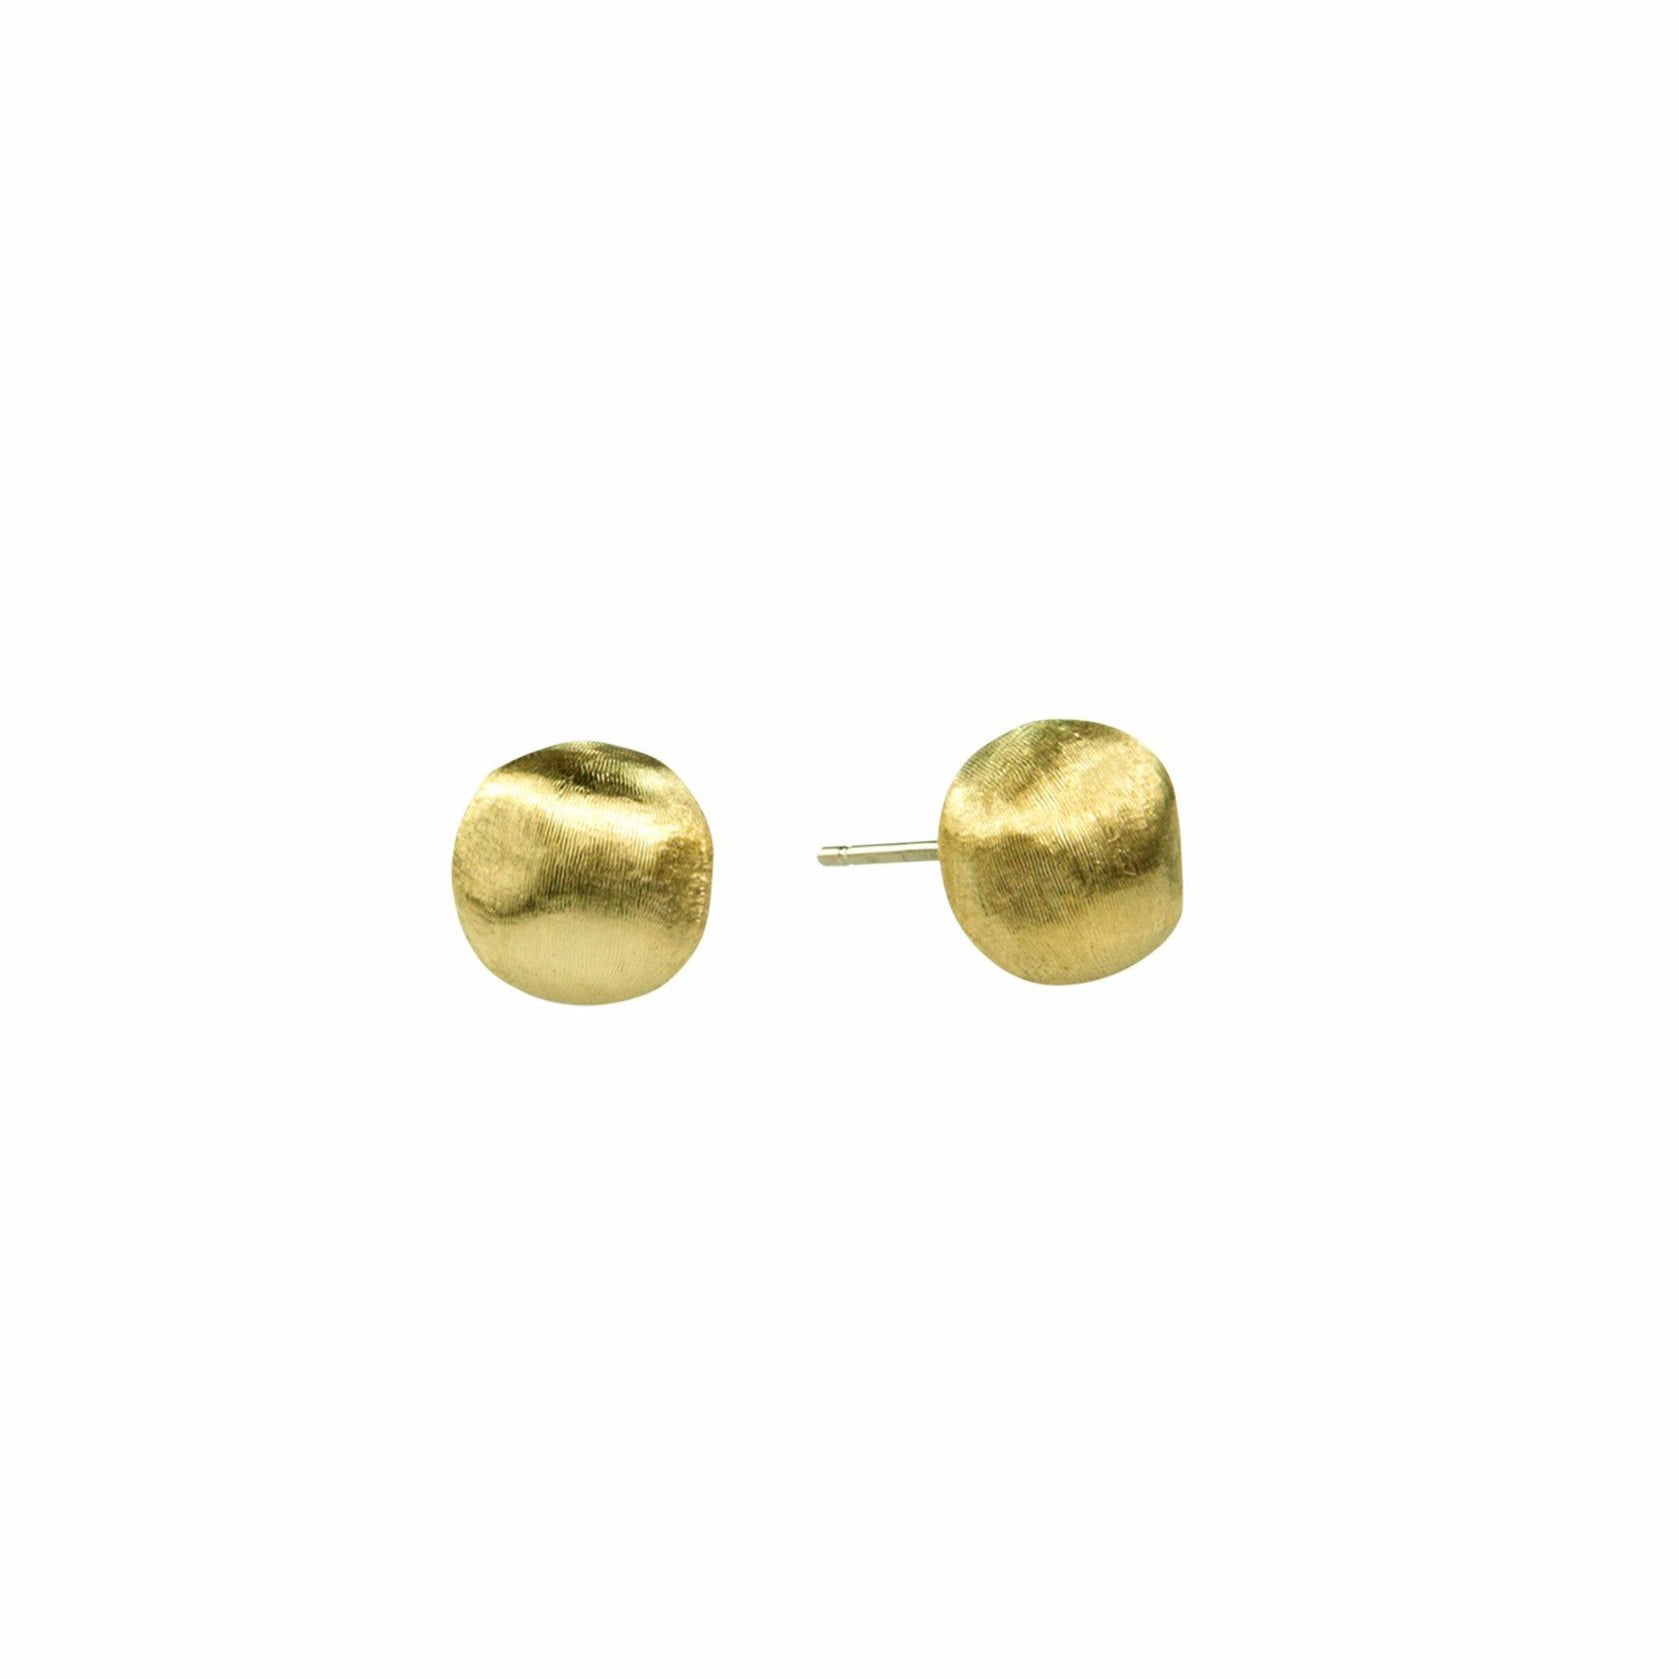 Africa 18K Yellow Gold Small Stud Earrings